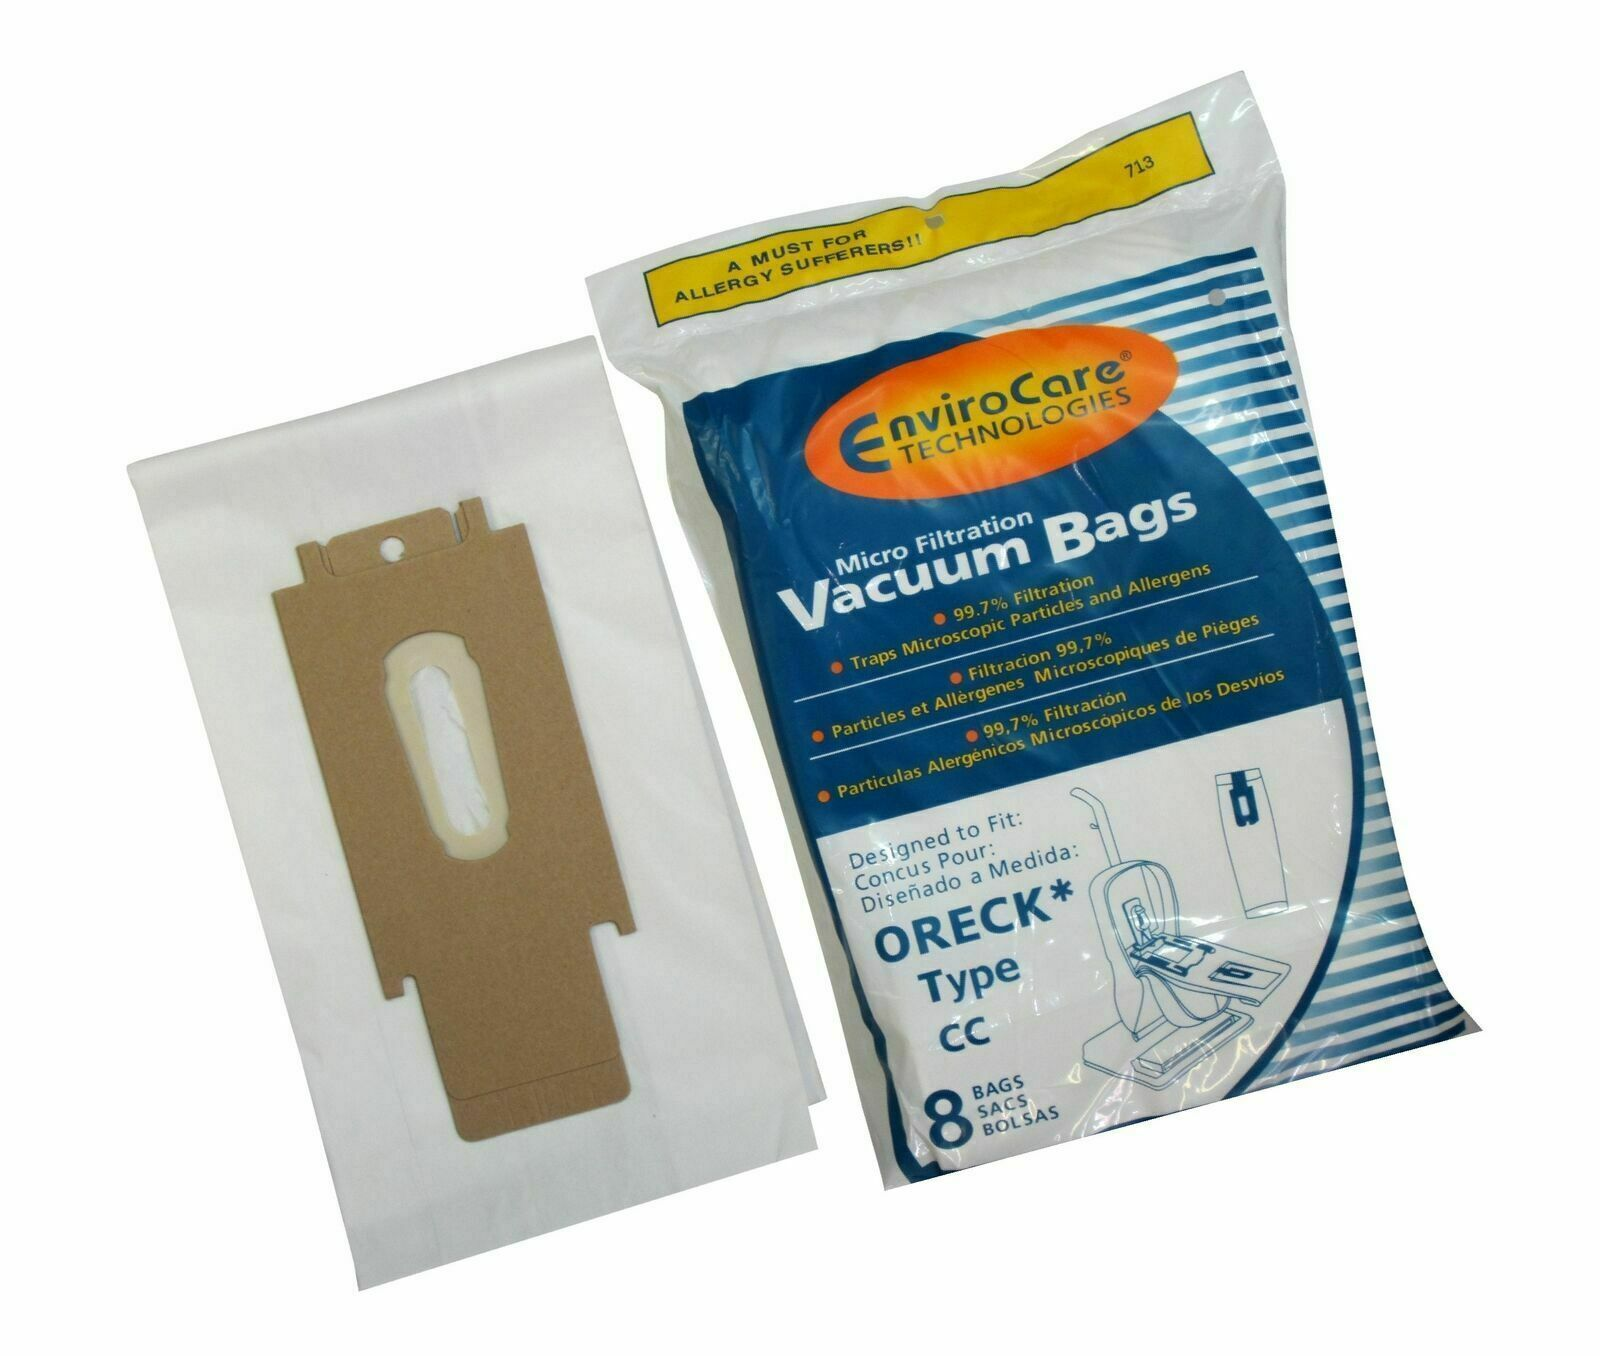 8 Oreck Vacuum Bags Type CC Fits Oreck XL Upright Vacuums Re